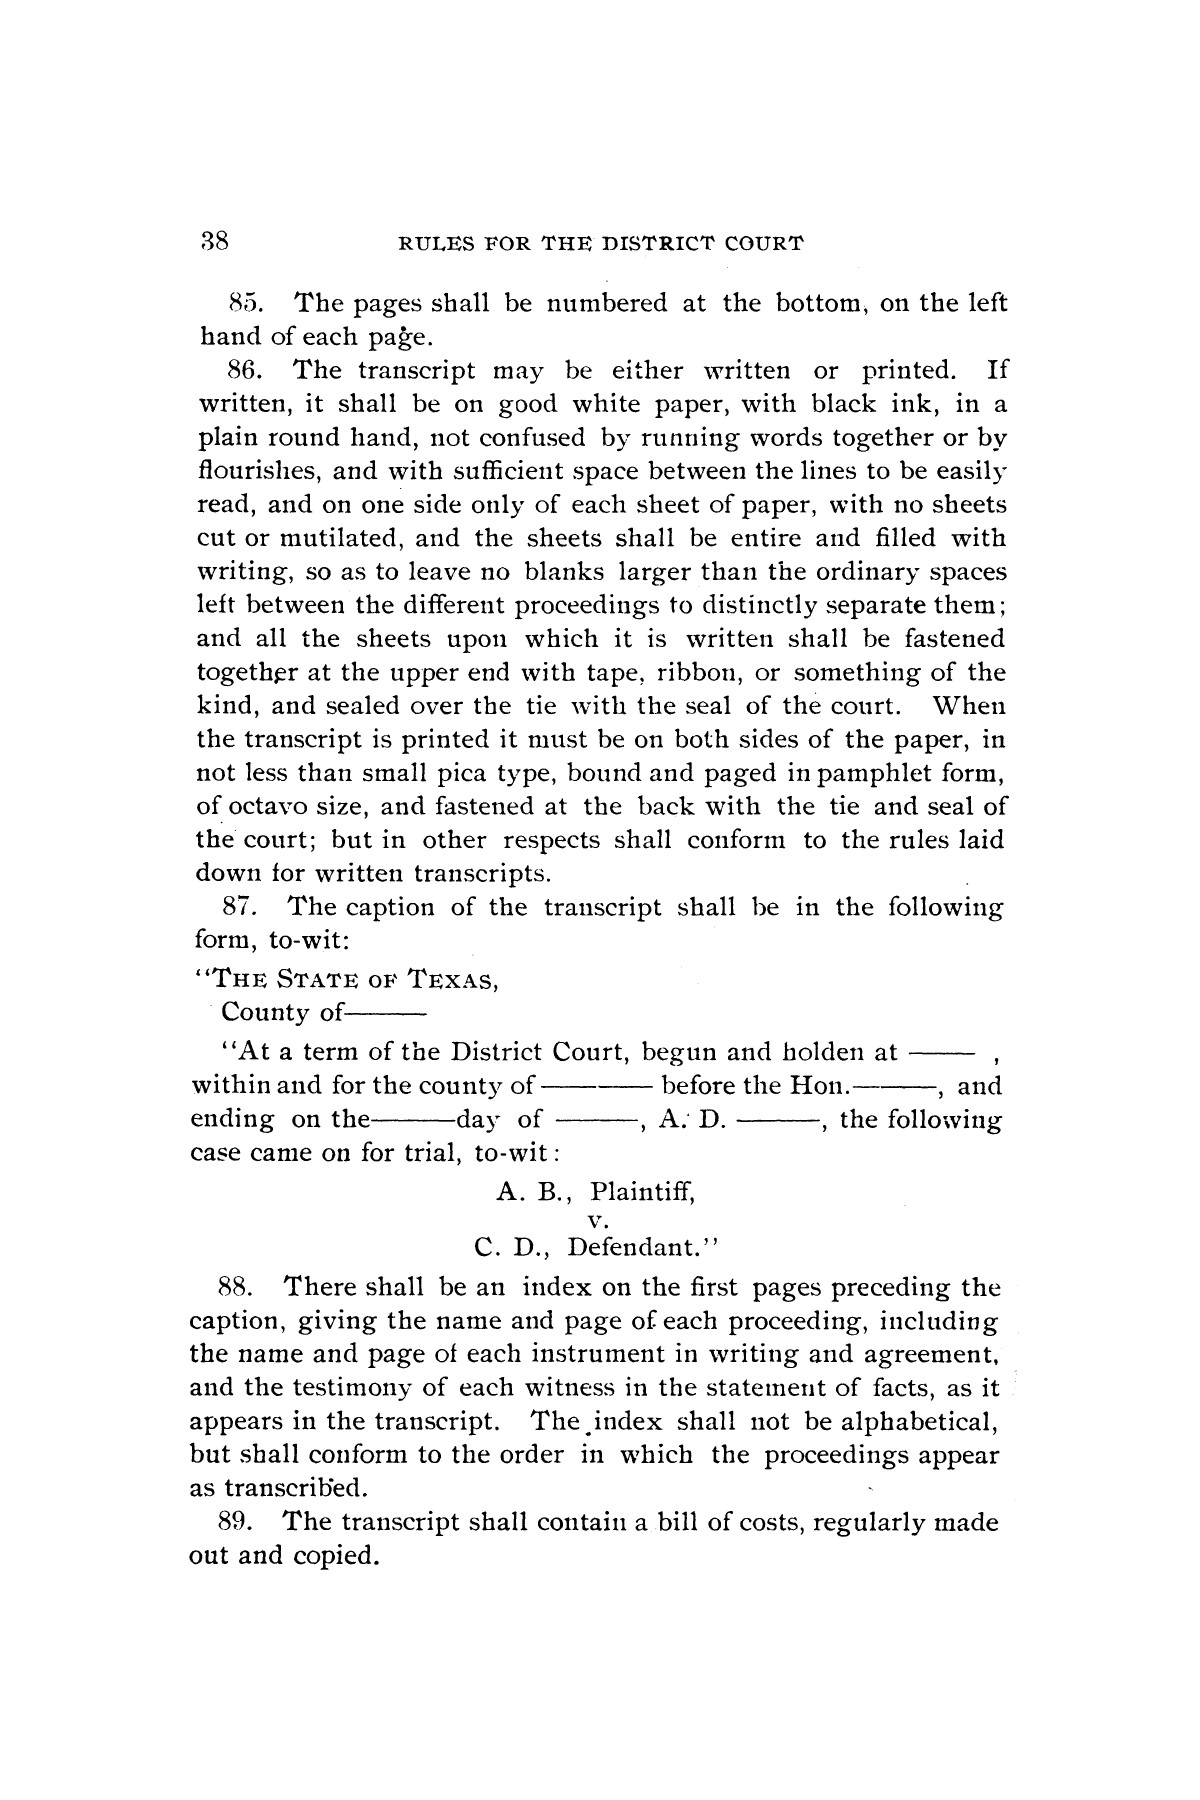 Rules for the courts of Texas: adopted by order of the Supreme Court at Tyler on the first day of December, A.D. 1877: together with amendments thereto at various times up to the close of the Austin term, A.D. 1890                                                                                                      [Sequence #]: 40 of 64